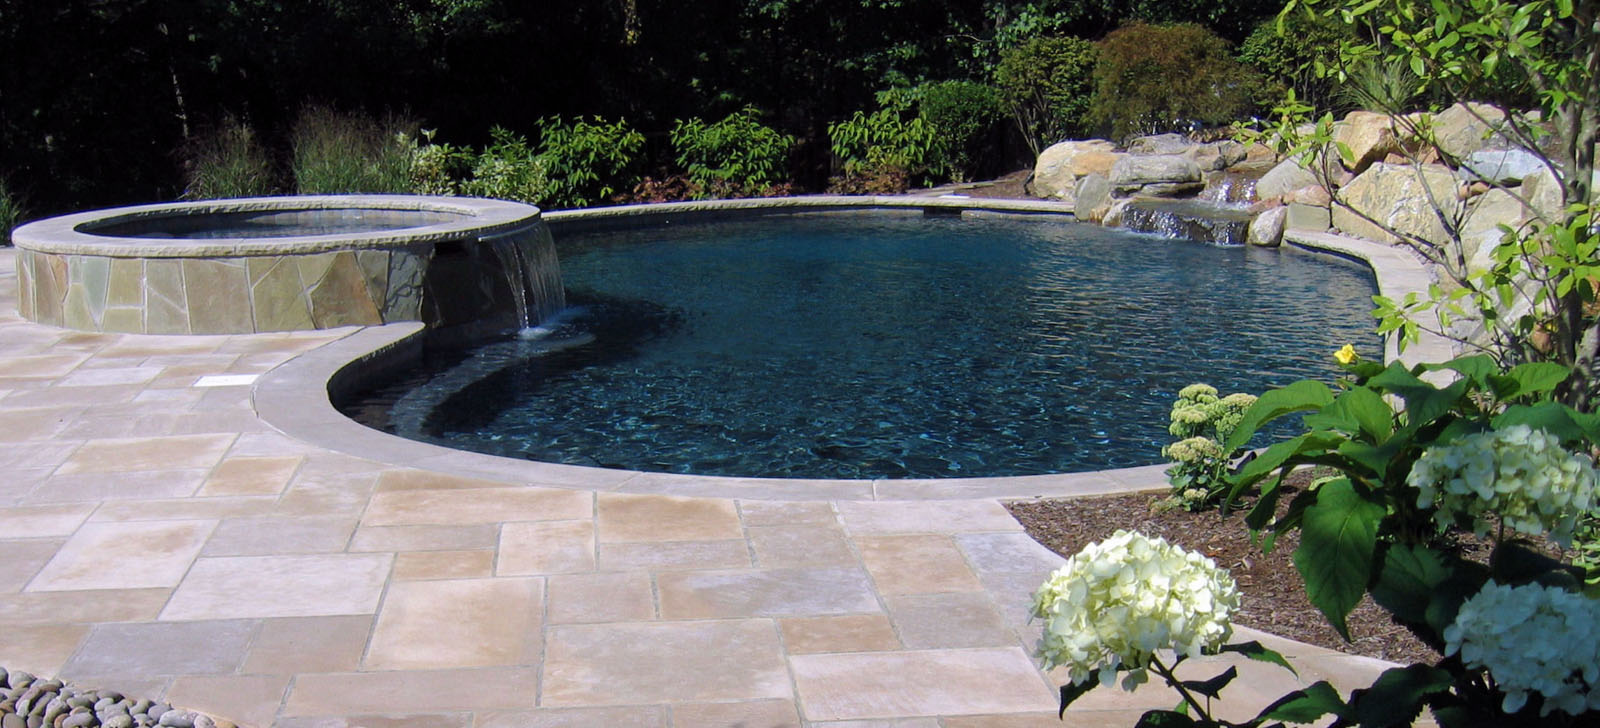 before and after landscape pictures, after, freeform swimming pool nj, spa